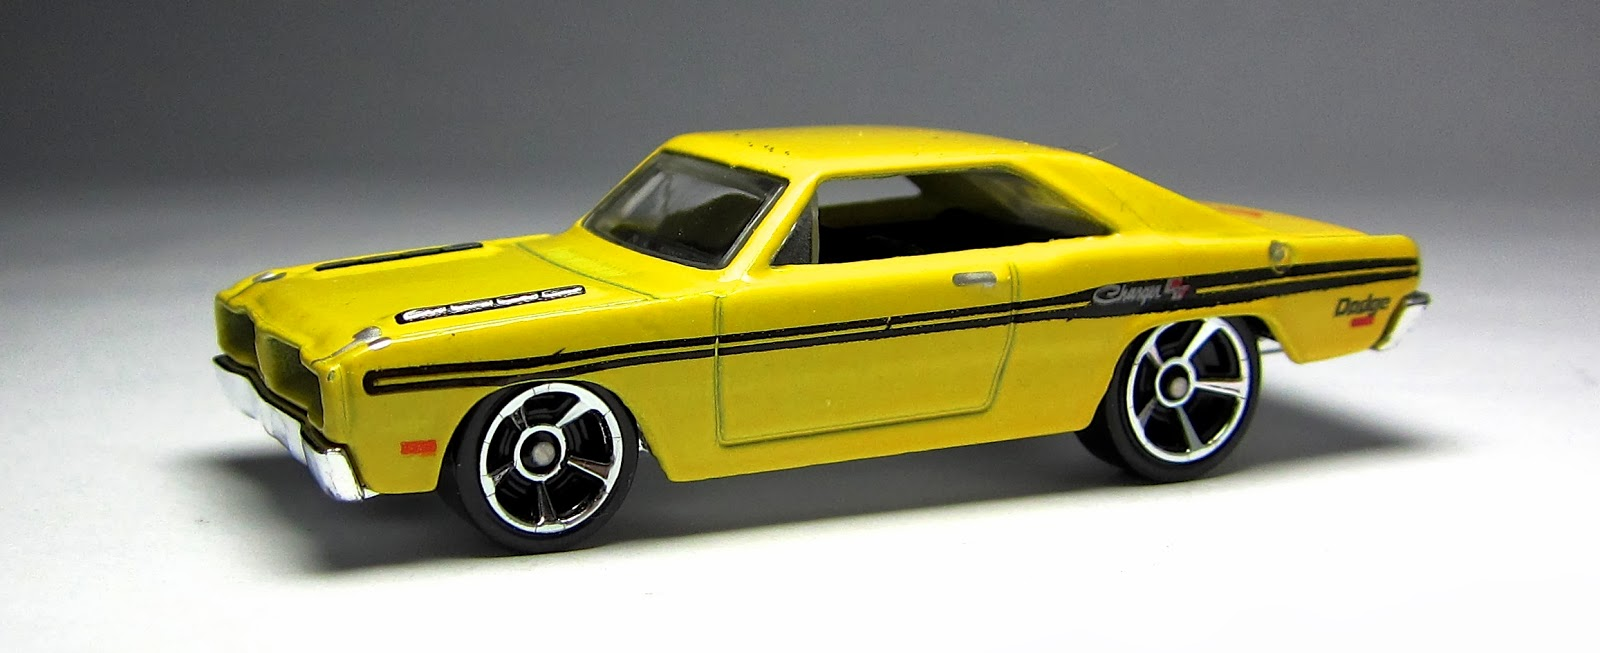 Lamley Group: First Look: 2014 Hot Wheels Brazilian Dodge Charger